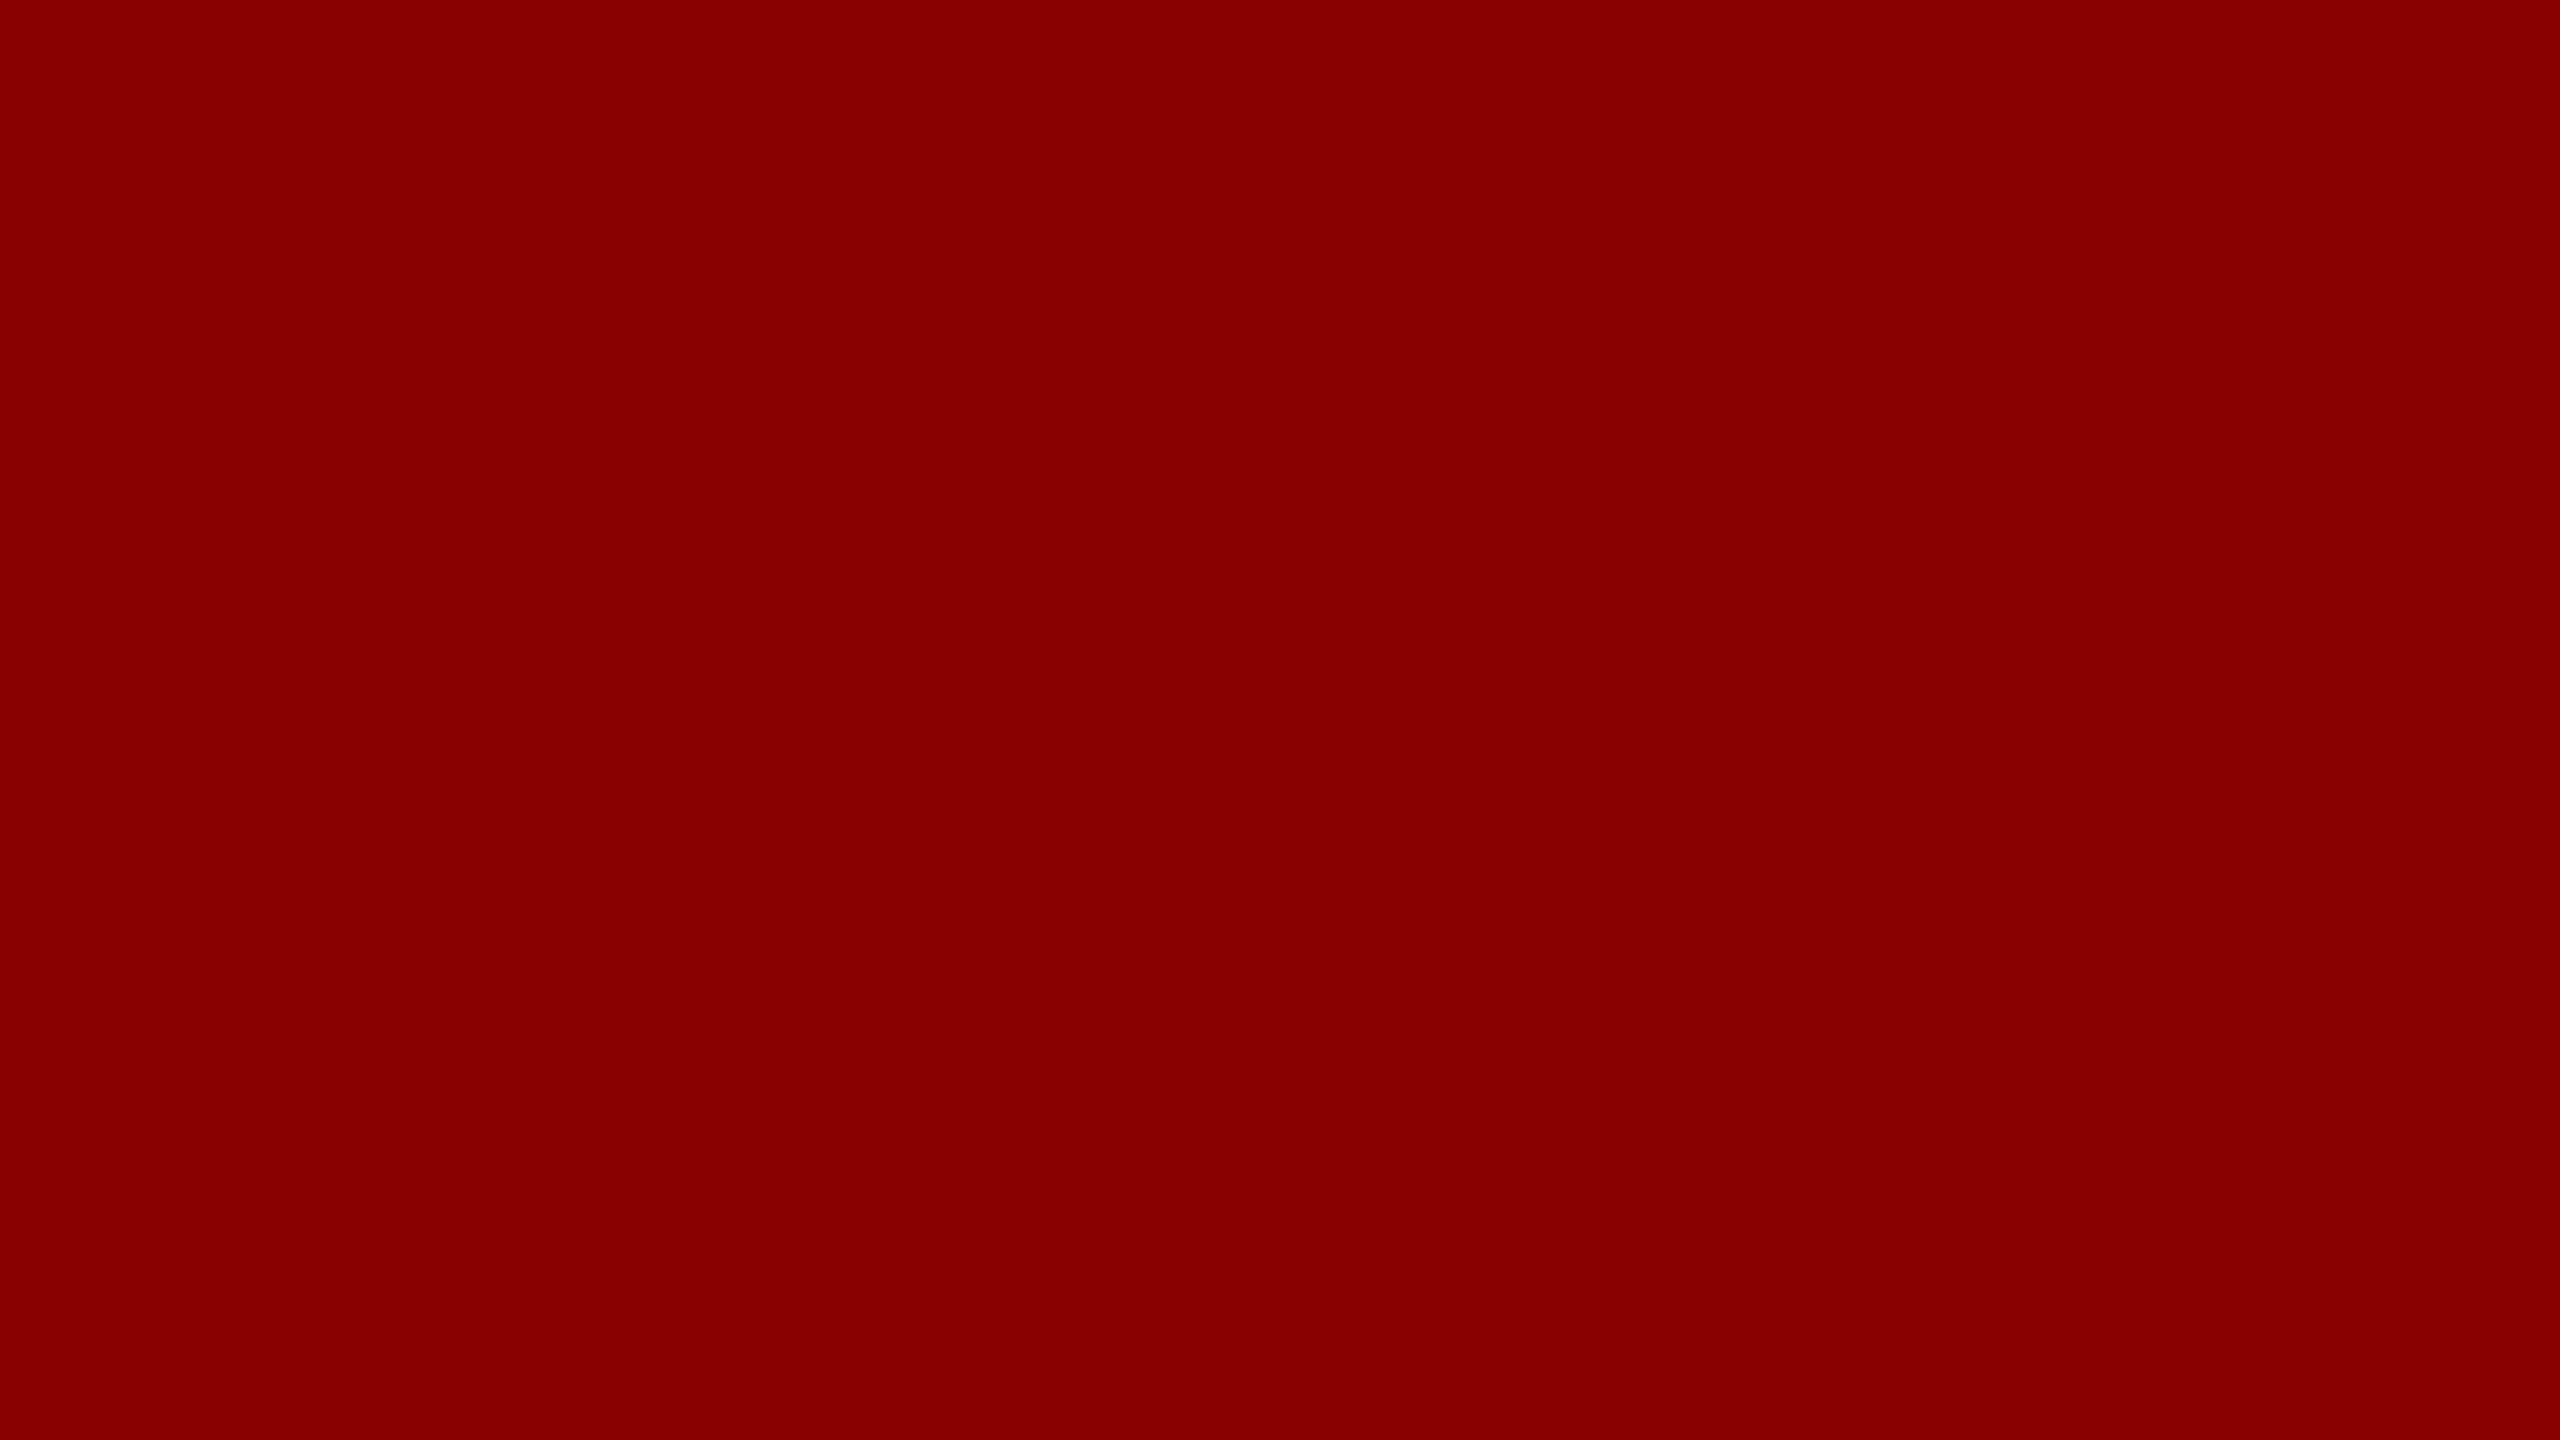 Free Download Dark Red Wallpapers 2560x1440 For Your Desktop